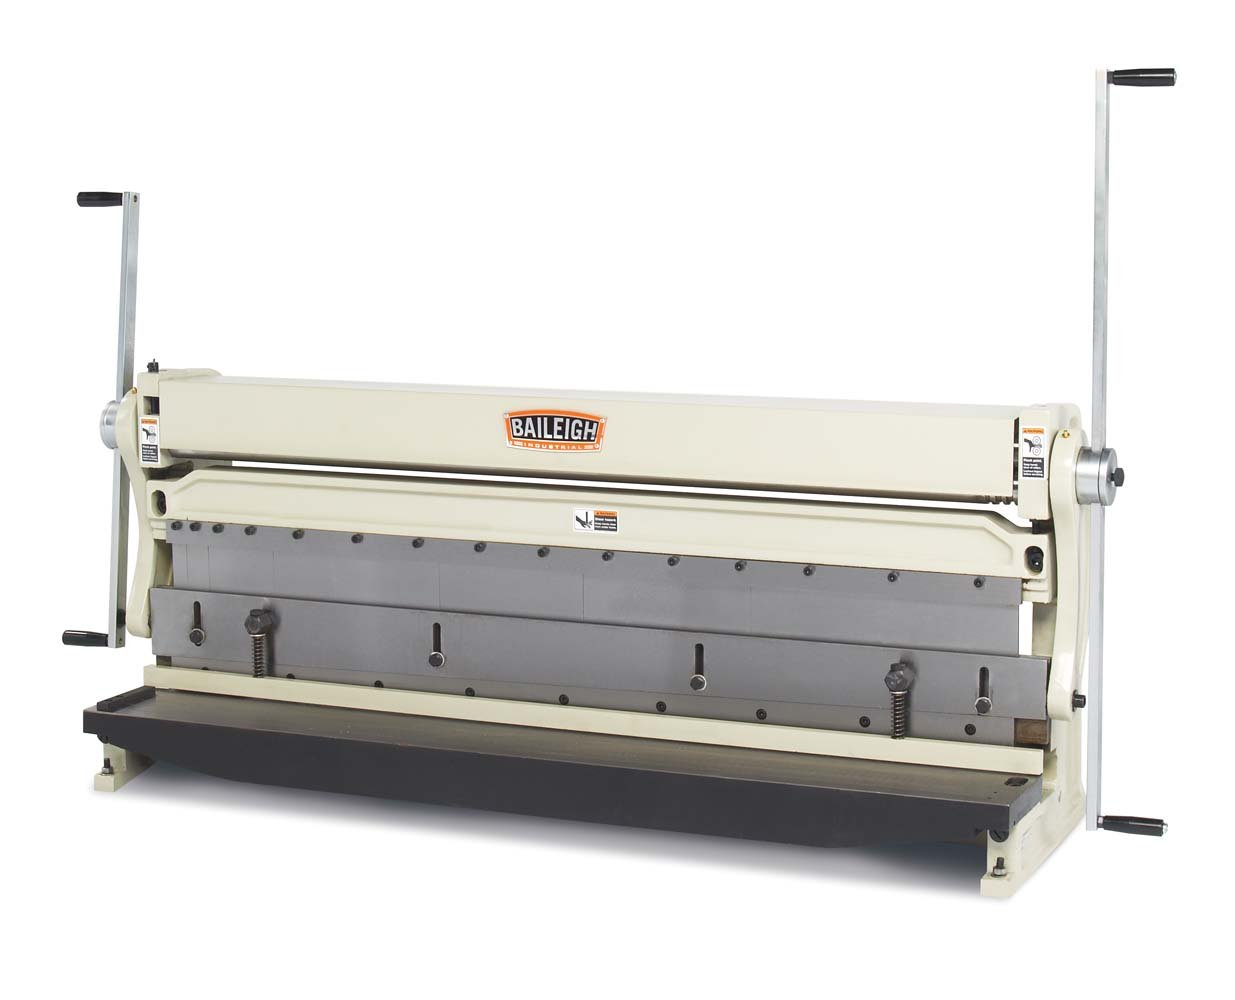 Baileigh SBR-5220 3-in-1 Combination Shear Brake Roll Machine, 52'' Bed Width, 20-Gauge Mild Steal Capacity